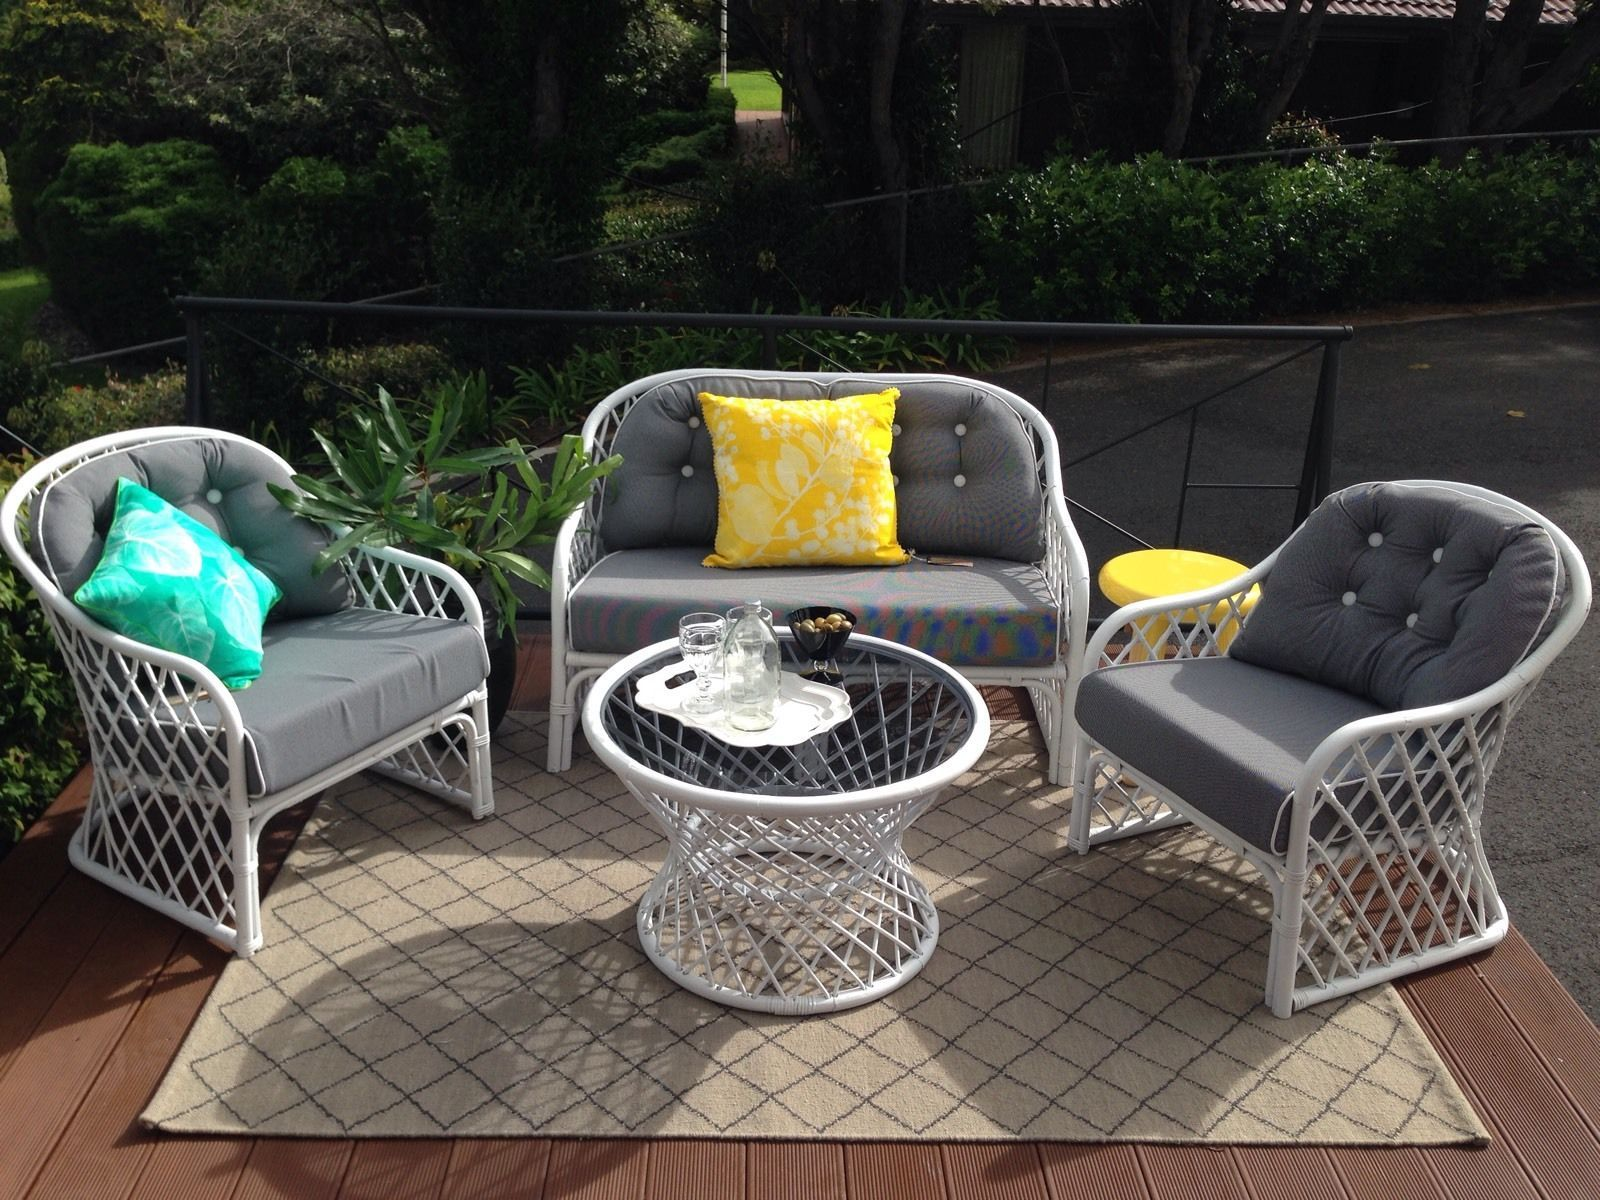 Cane Lounge Suite Outdoor Wicker Furniture Outdoor Furniture Cushions Outdoor Furniture - Outdoor Furniture Clearance Toowoomba